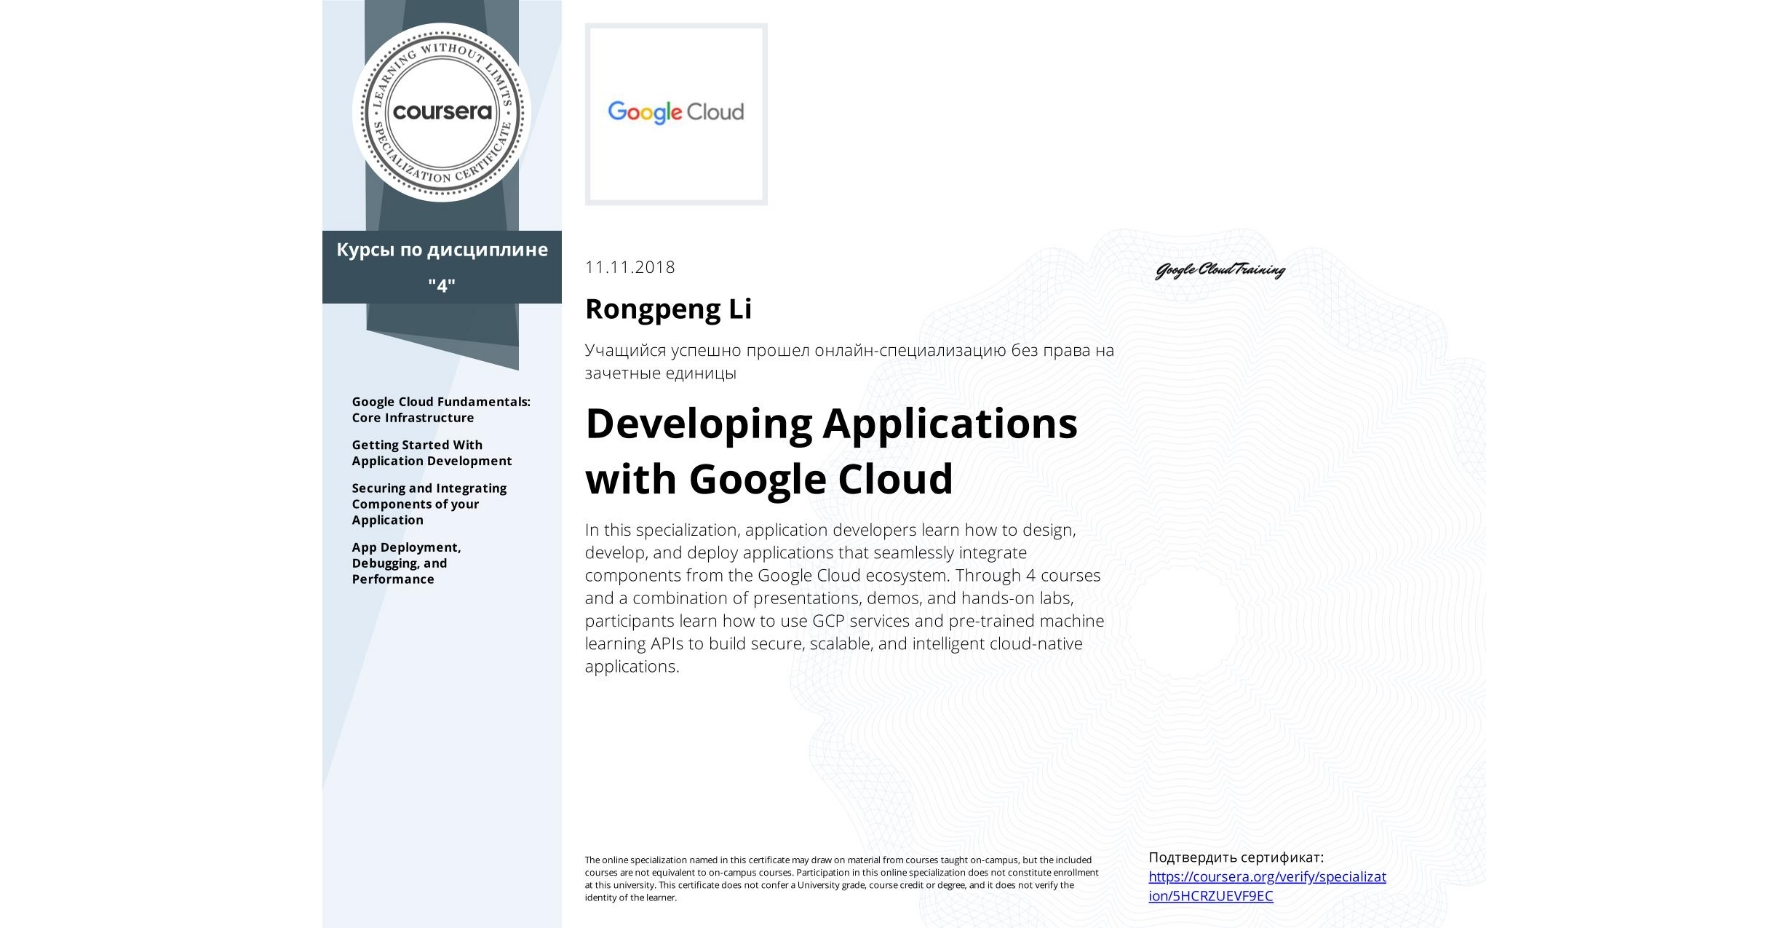 View certificate for Rongpeng Li, Developing Applications with Google Cloud, offered through Coursera. In this specialization, application developers learn how to design, develop, and deploy applications that seamlessly integrate components from the Google Cloud ecosystem. Through 4 courses and a combination of presentations, demos, and hands-on labs, participants learn how to use GCP services and pre-trained machine learning APIs to build secure, scalable, and intelligent cloud-native applications.